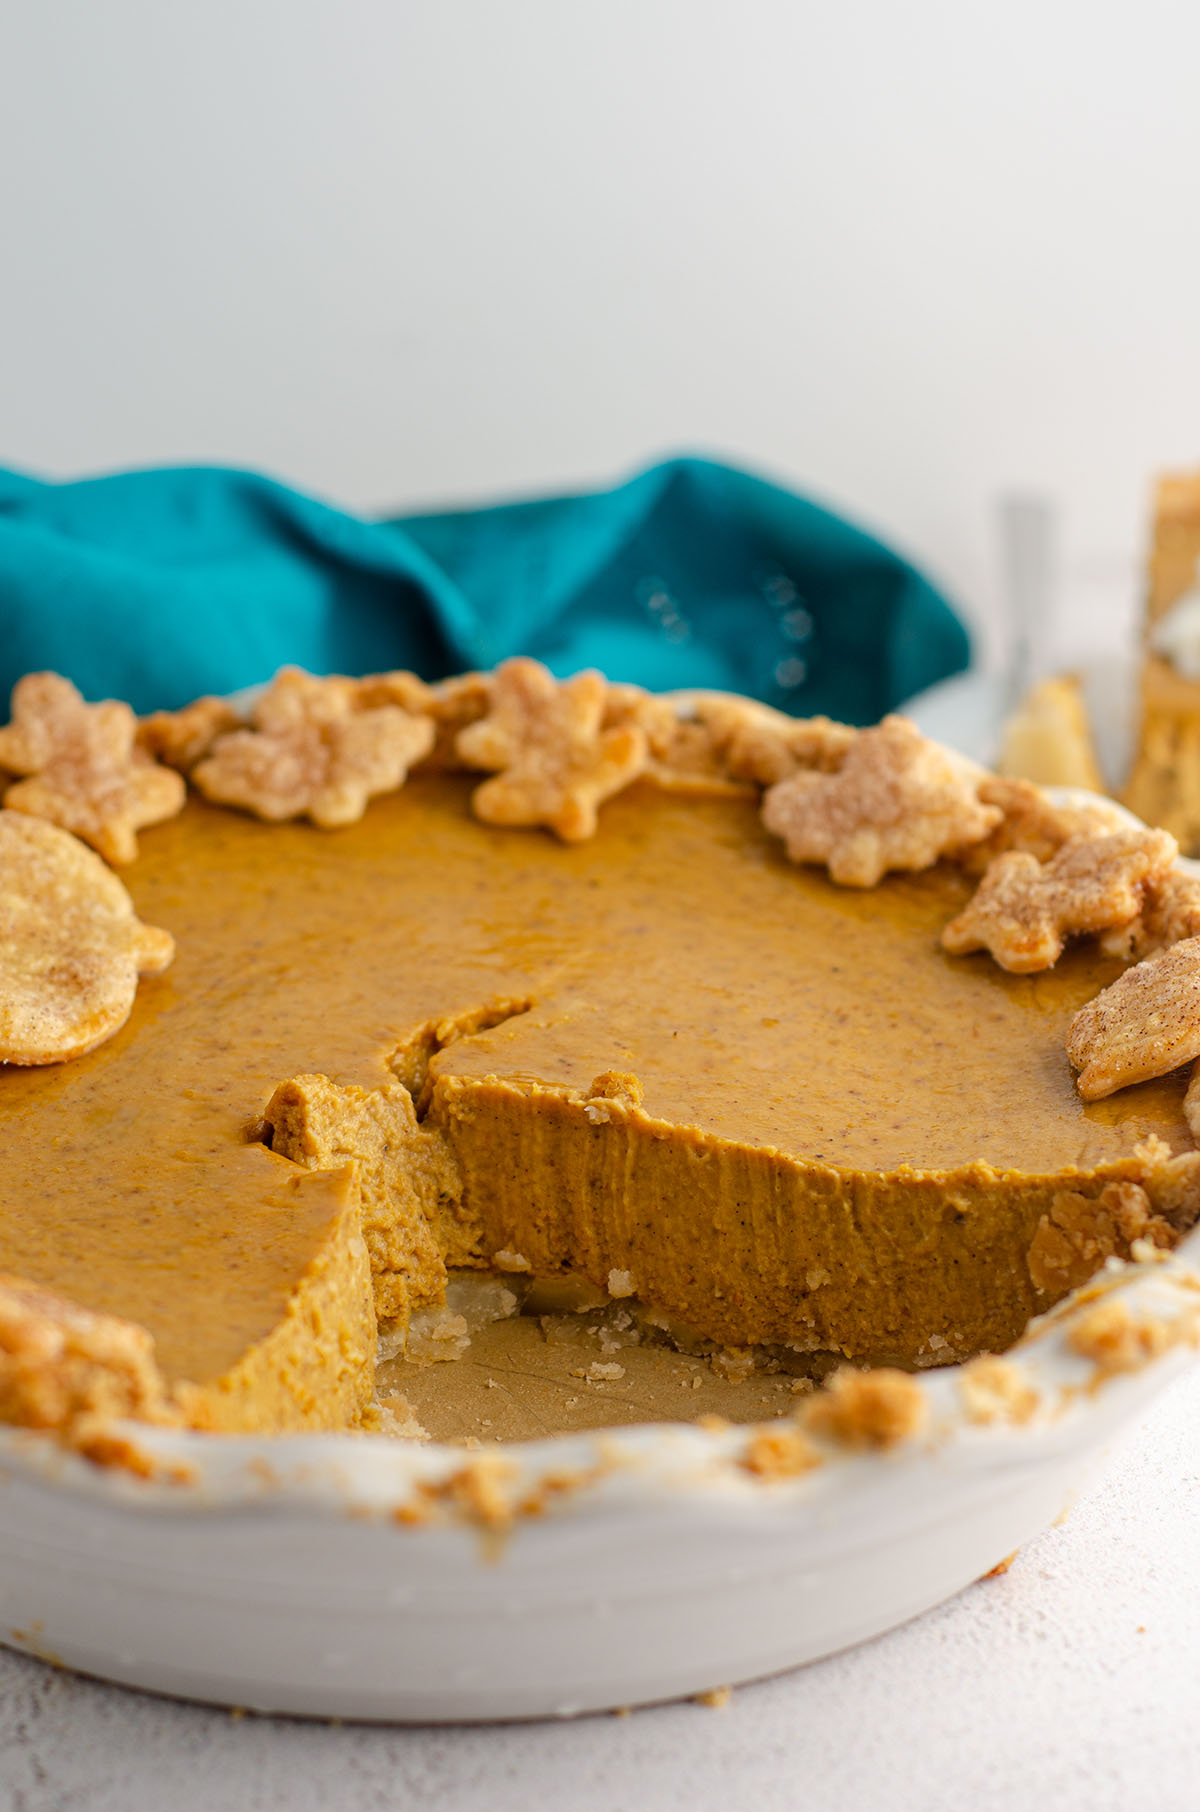 pumpkin pie with some slices removed